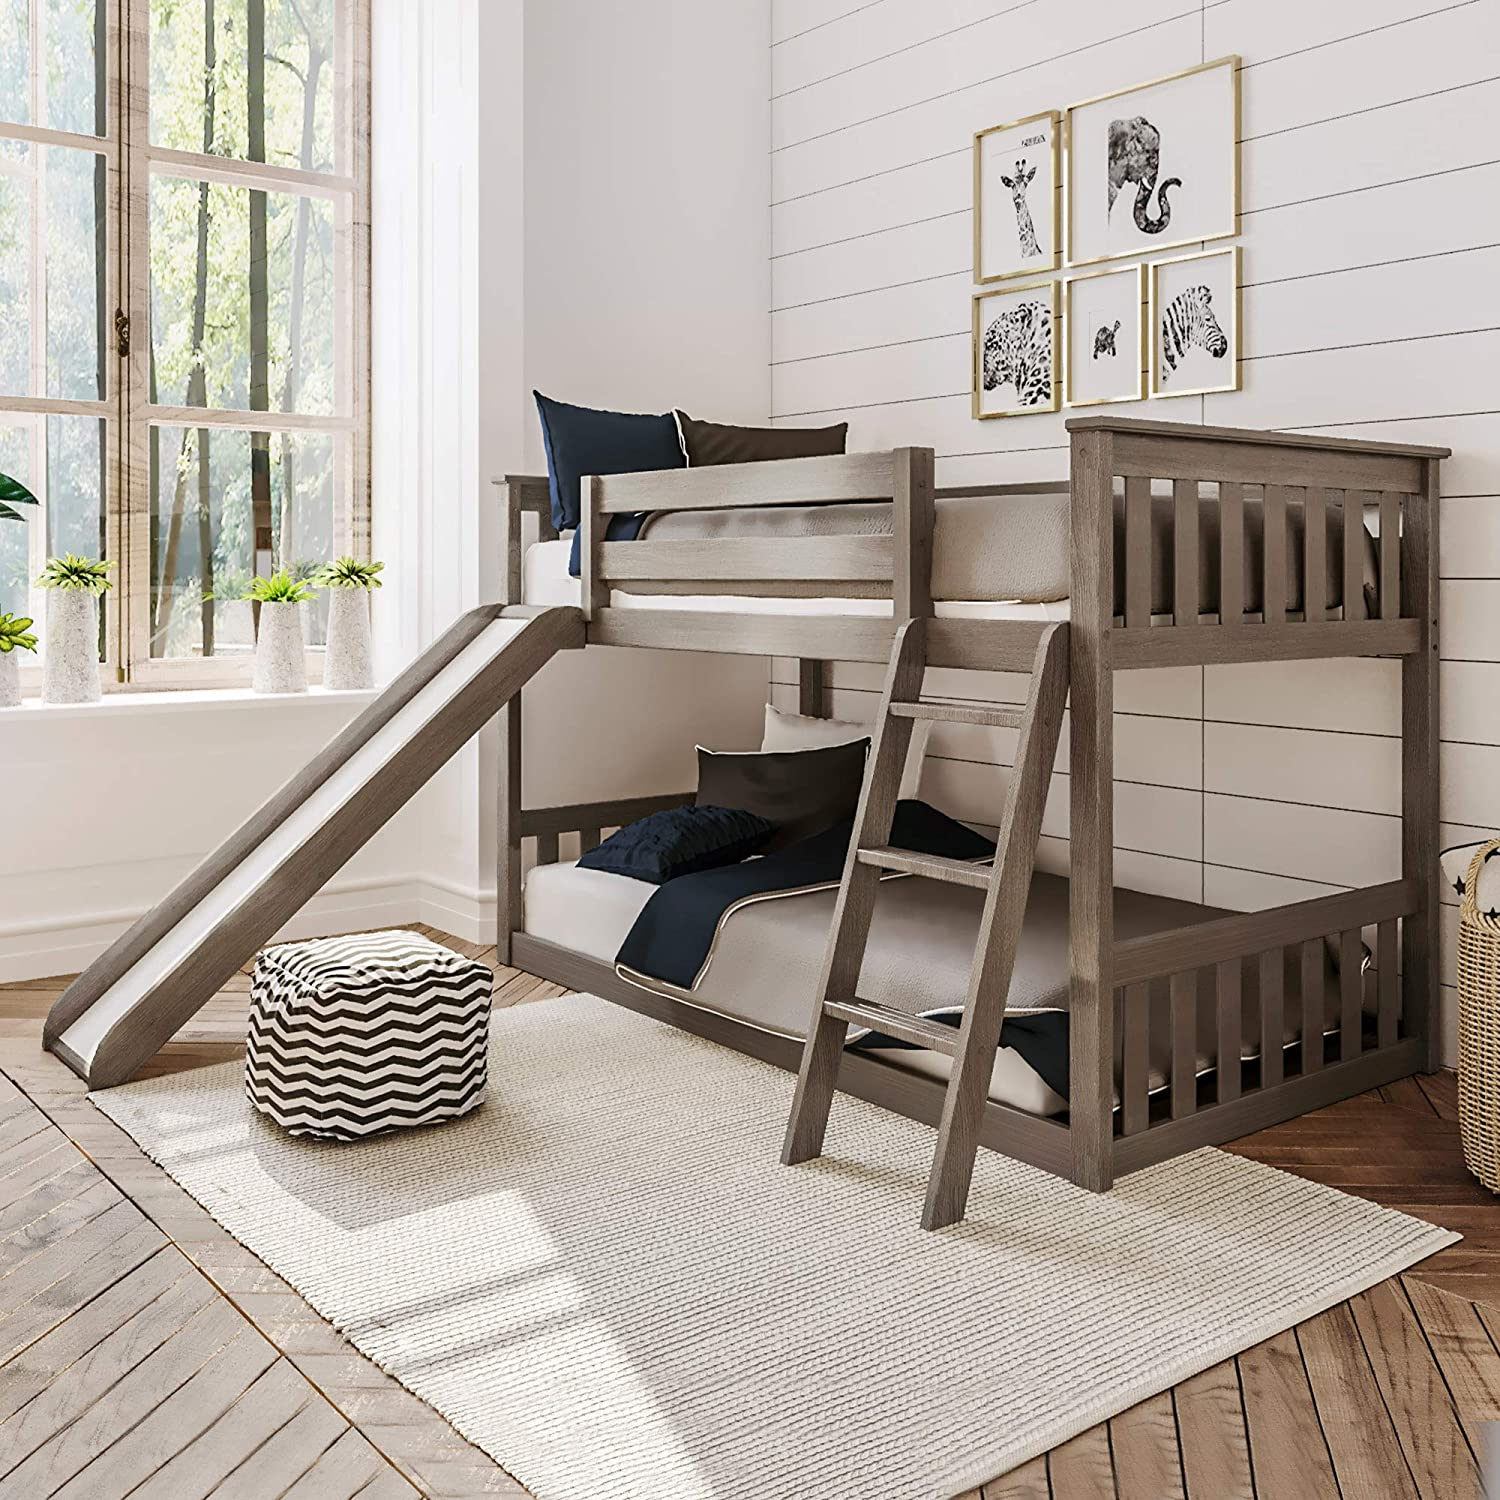 Sales results No. 1 Max Lily Solid Wood Twin Low Clay Slide Bunk Bed with Max 78% OFF